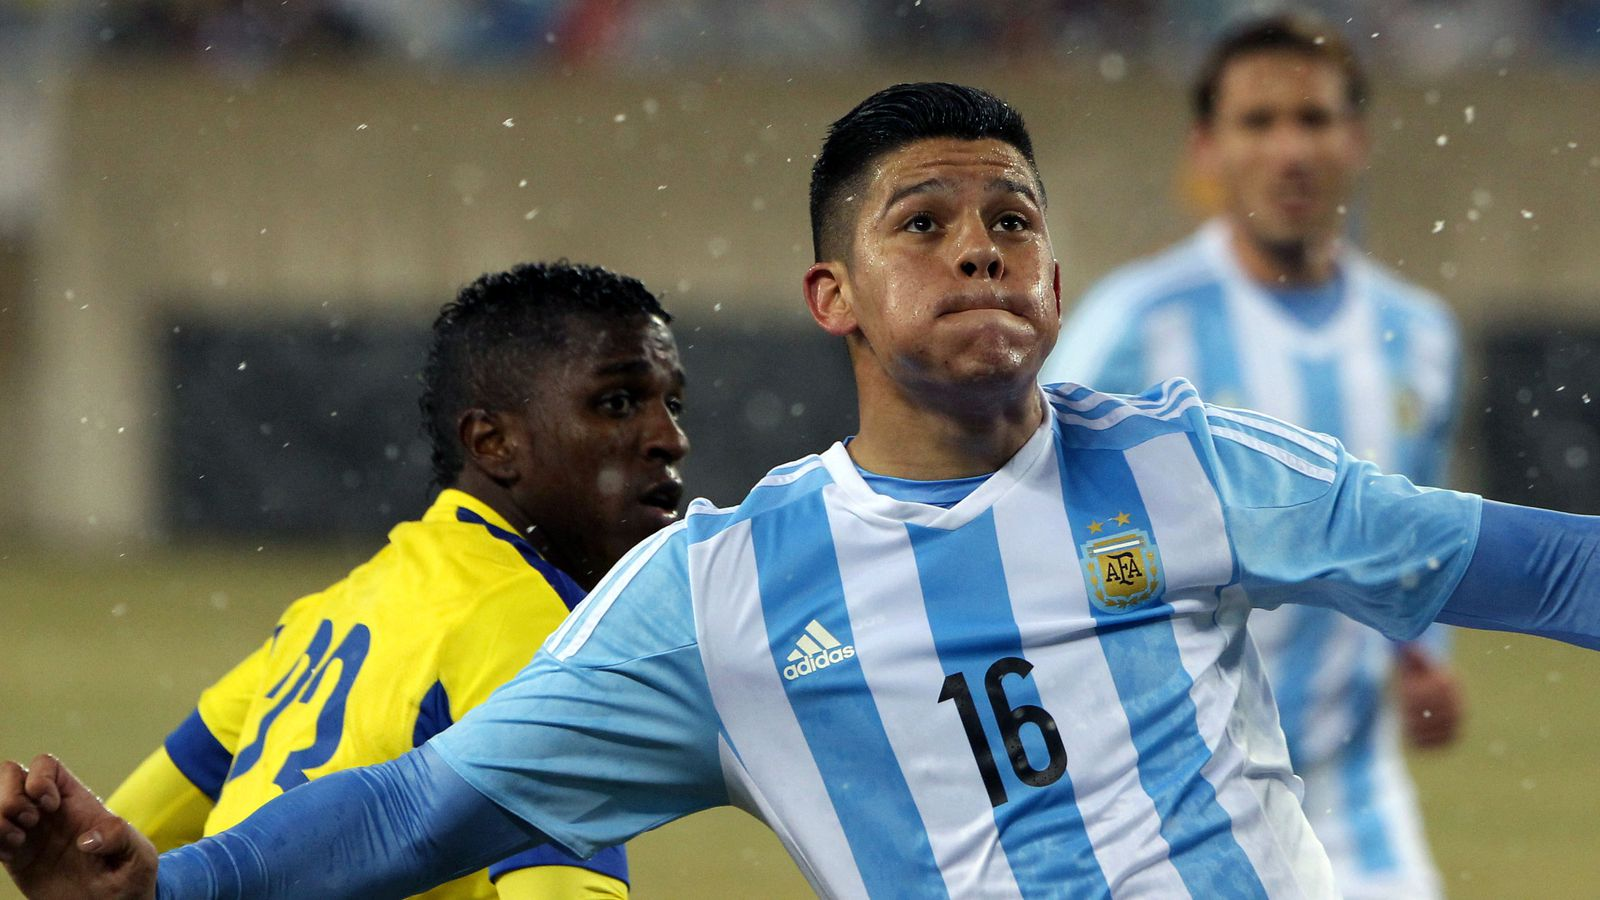 bolivia vs argentina online dating Find argentina vs bolivia result on yahoo sports view full match commentary including video highlights, news, team line-ups, player ratings, stats and more.